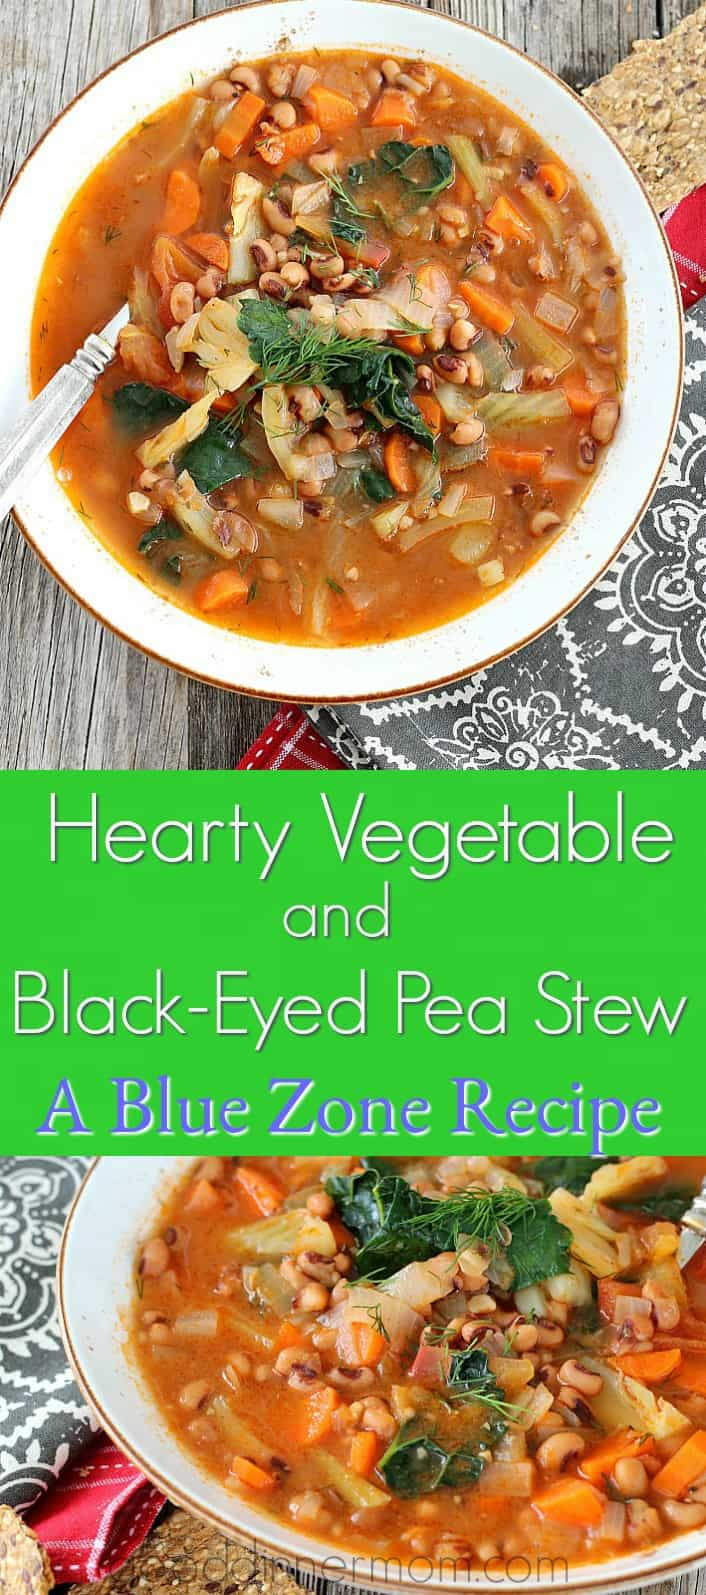 Hearty Vegetable and Black-eyed Pea Stew is simple, yet delicious! One pot, packed with protein and flavor.